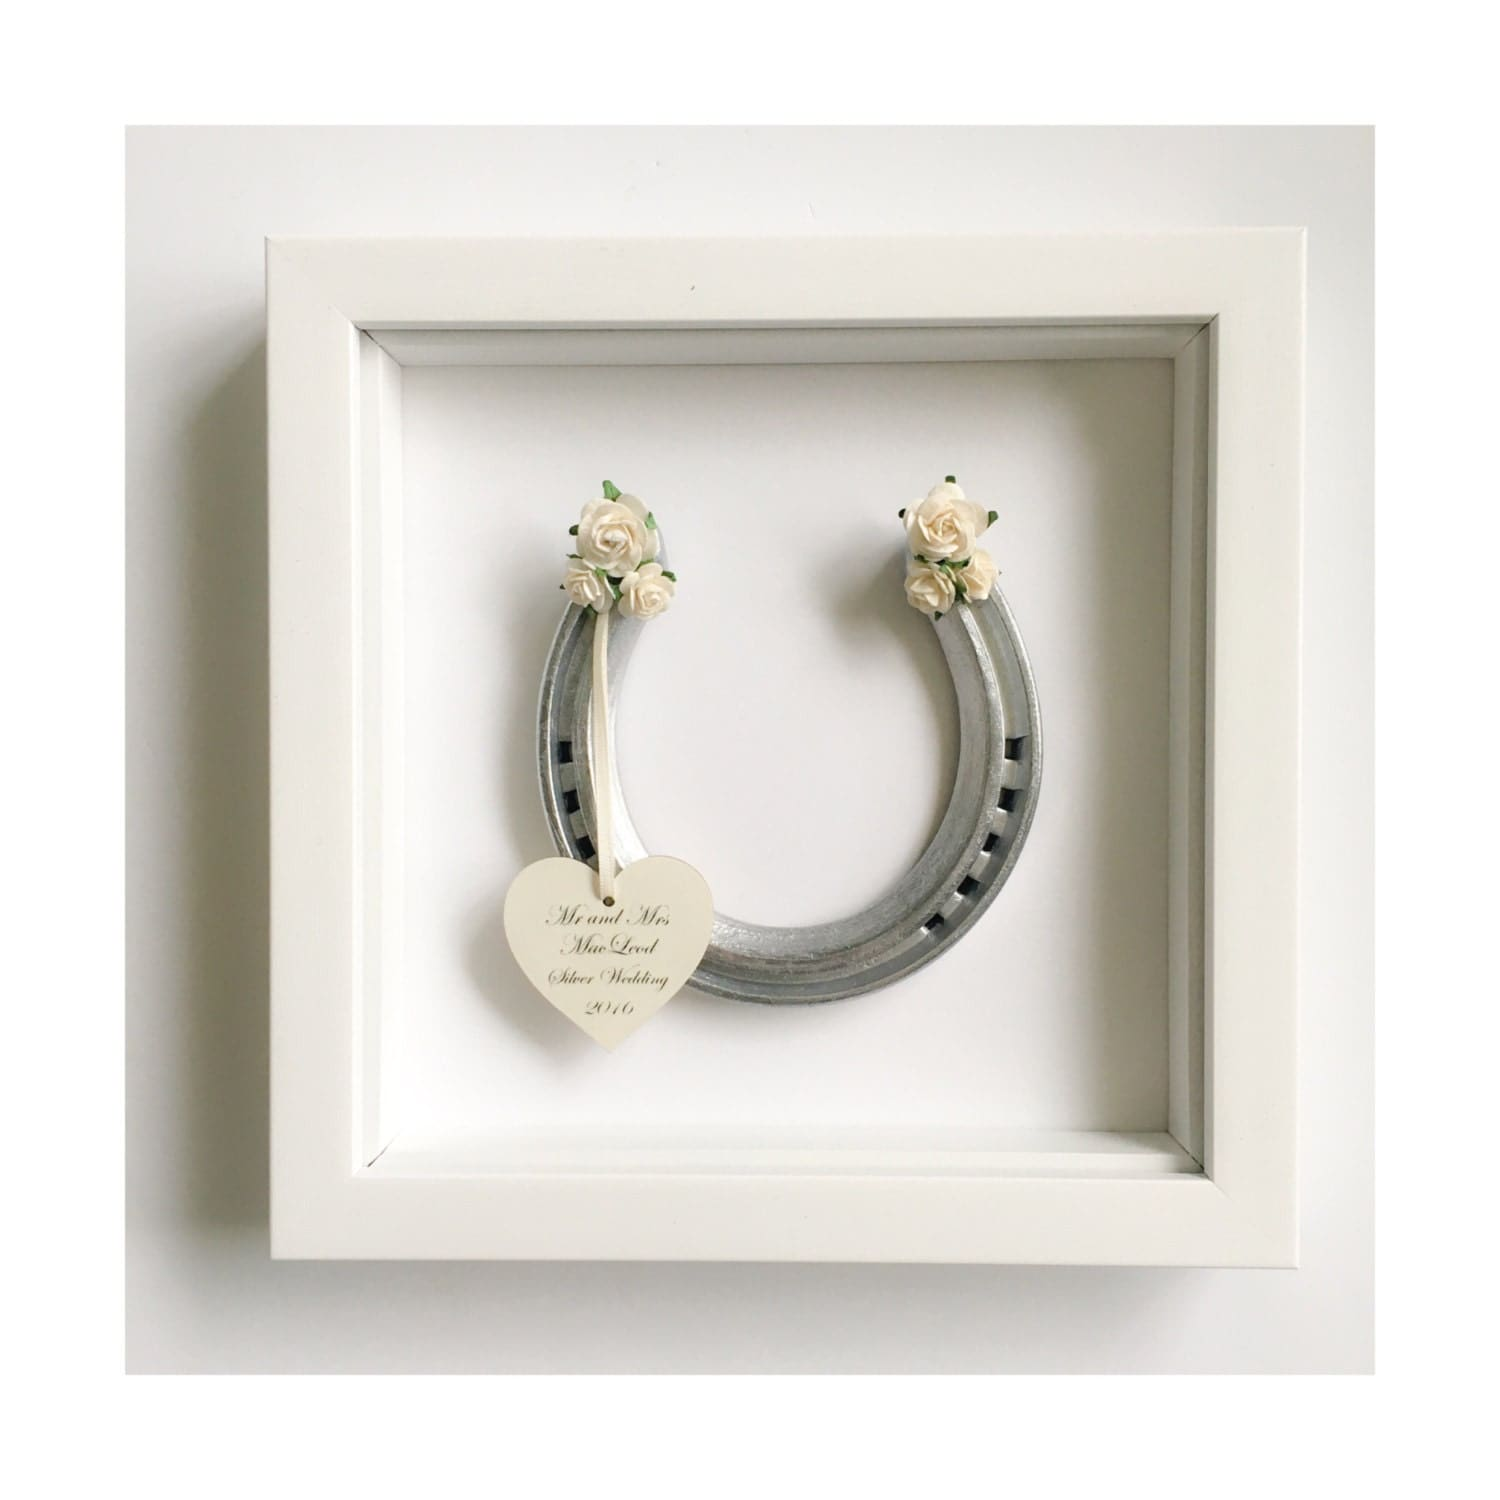 Horseshoe Wedding Gift: Personalised Wedding Horseshoe Traditional Bridal Gift